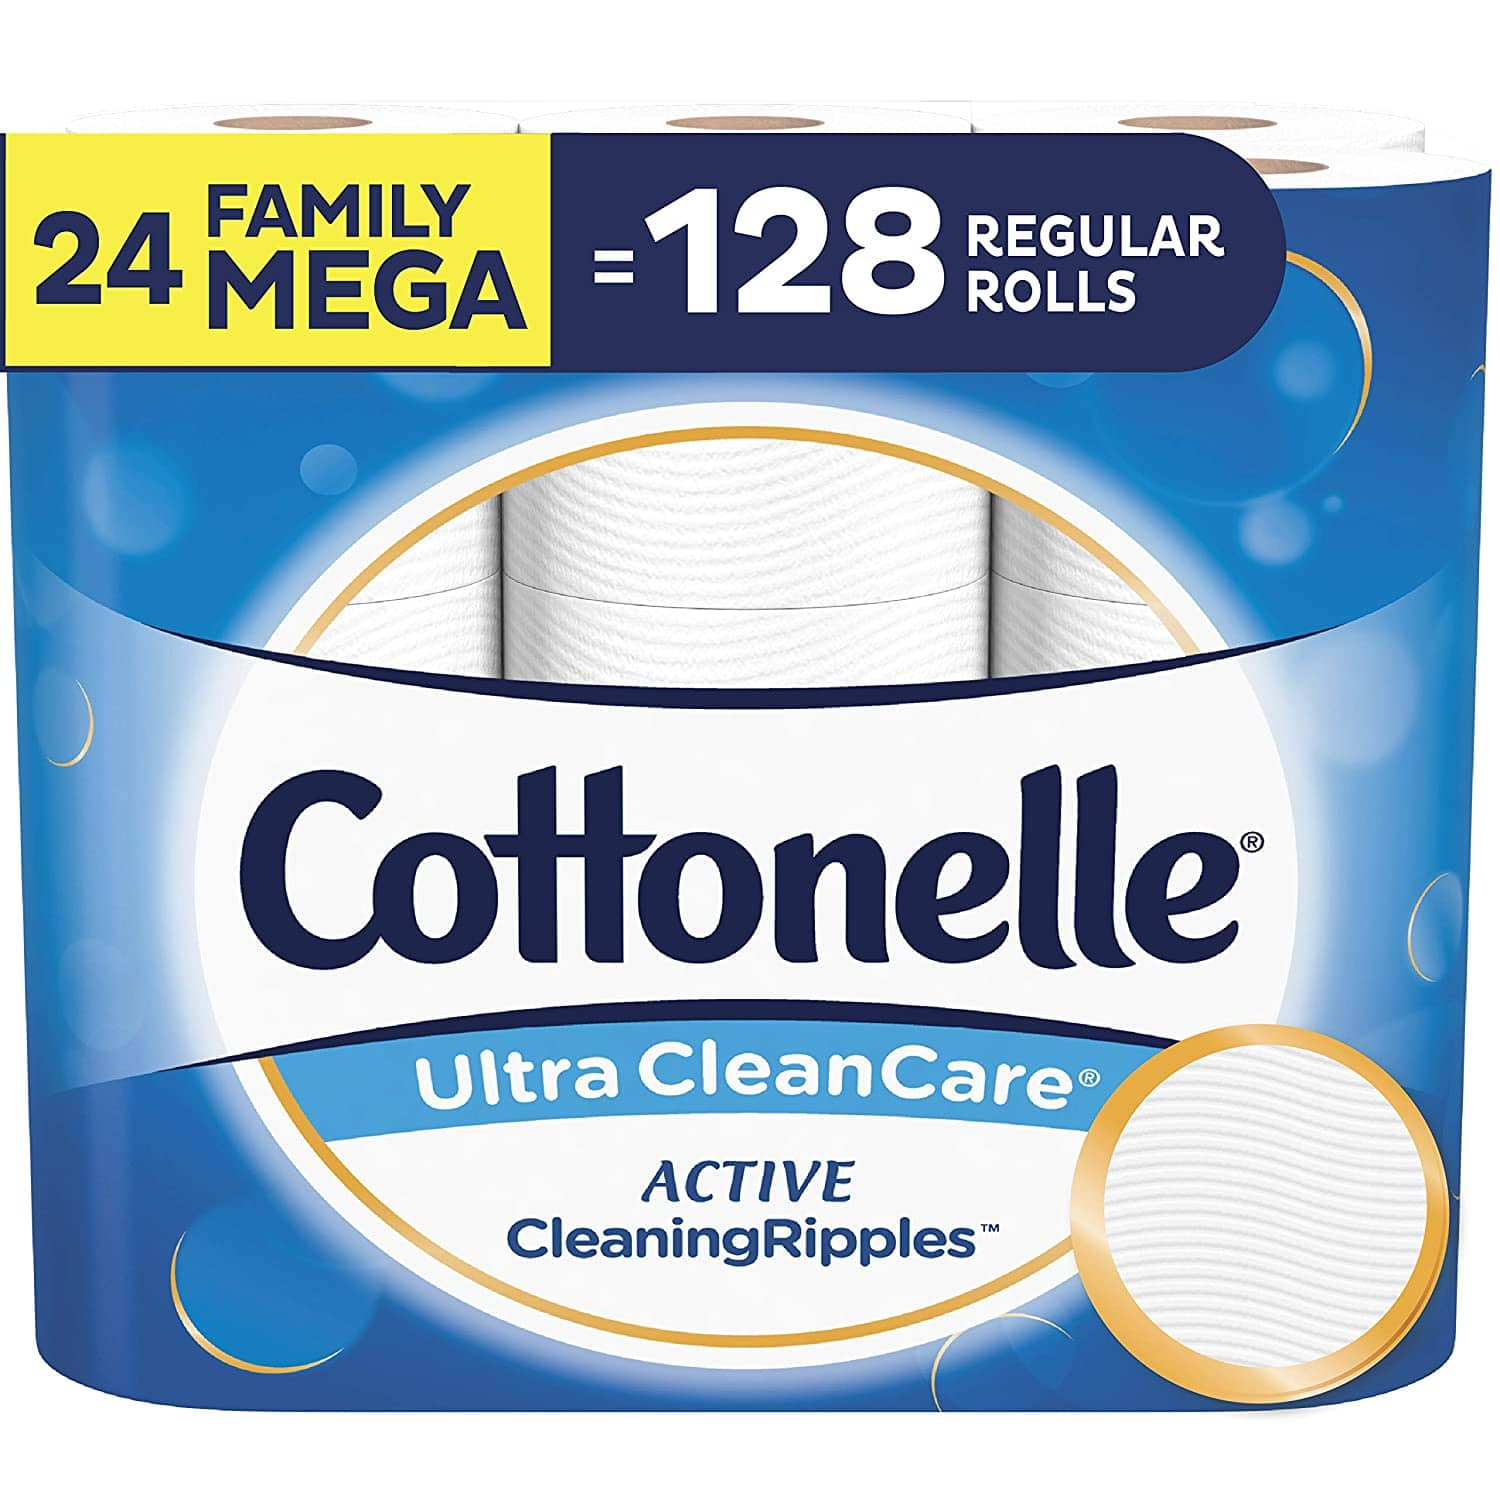 Cottonelle Ultra CleanCare Soft Toilet Paper with Active CleaningRipples, 24 Family Mega Rolls $25